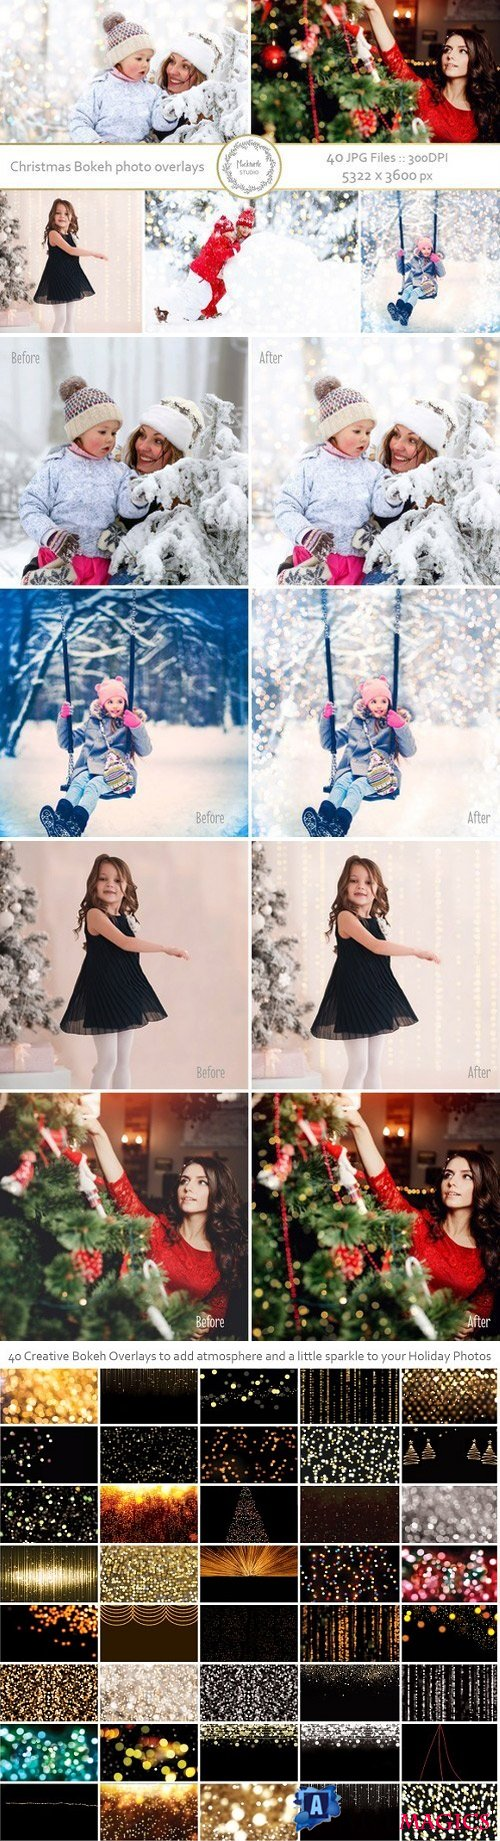 Christmas Bokeh Photo Overlays 2006479